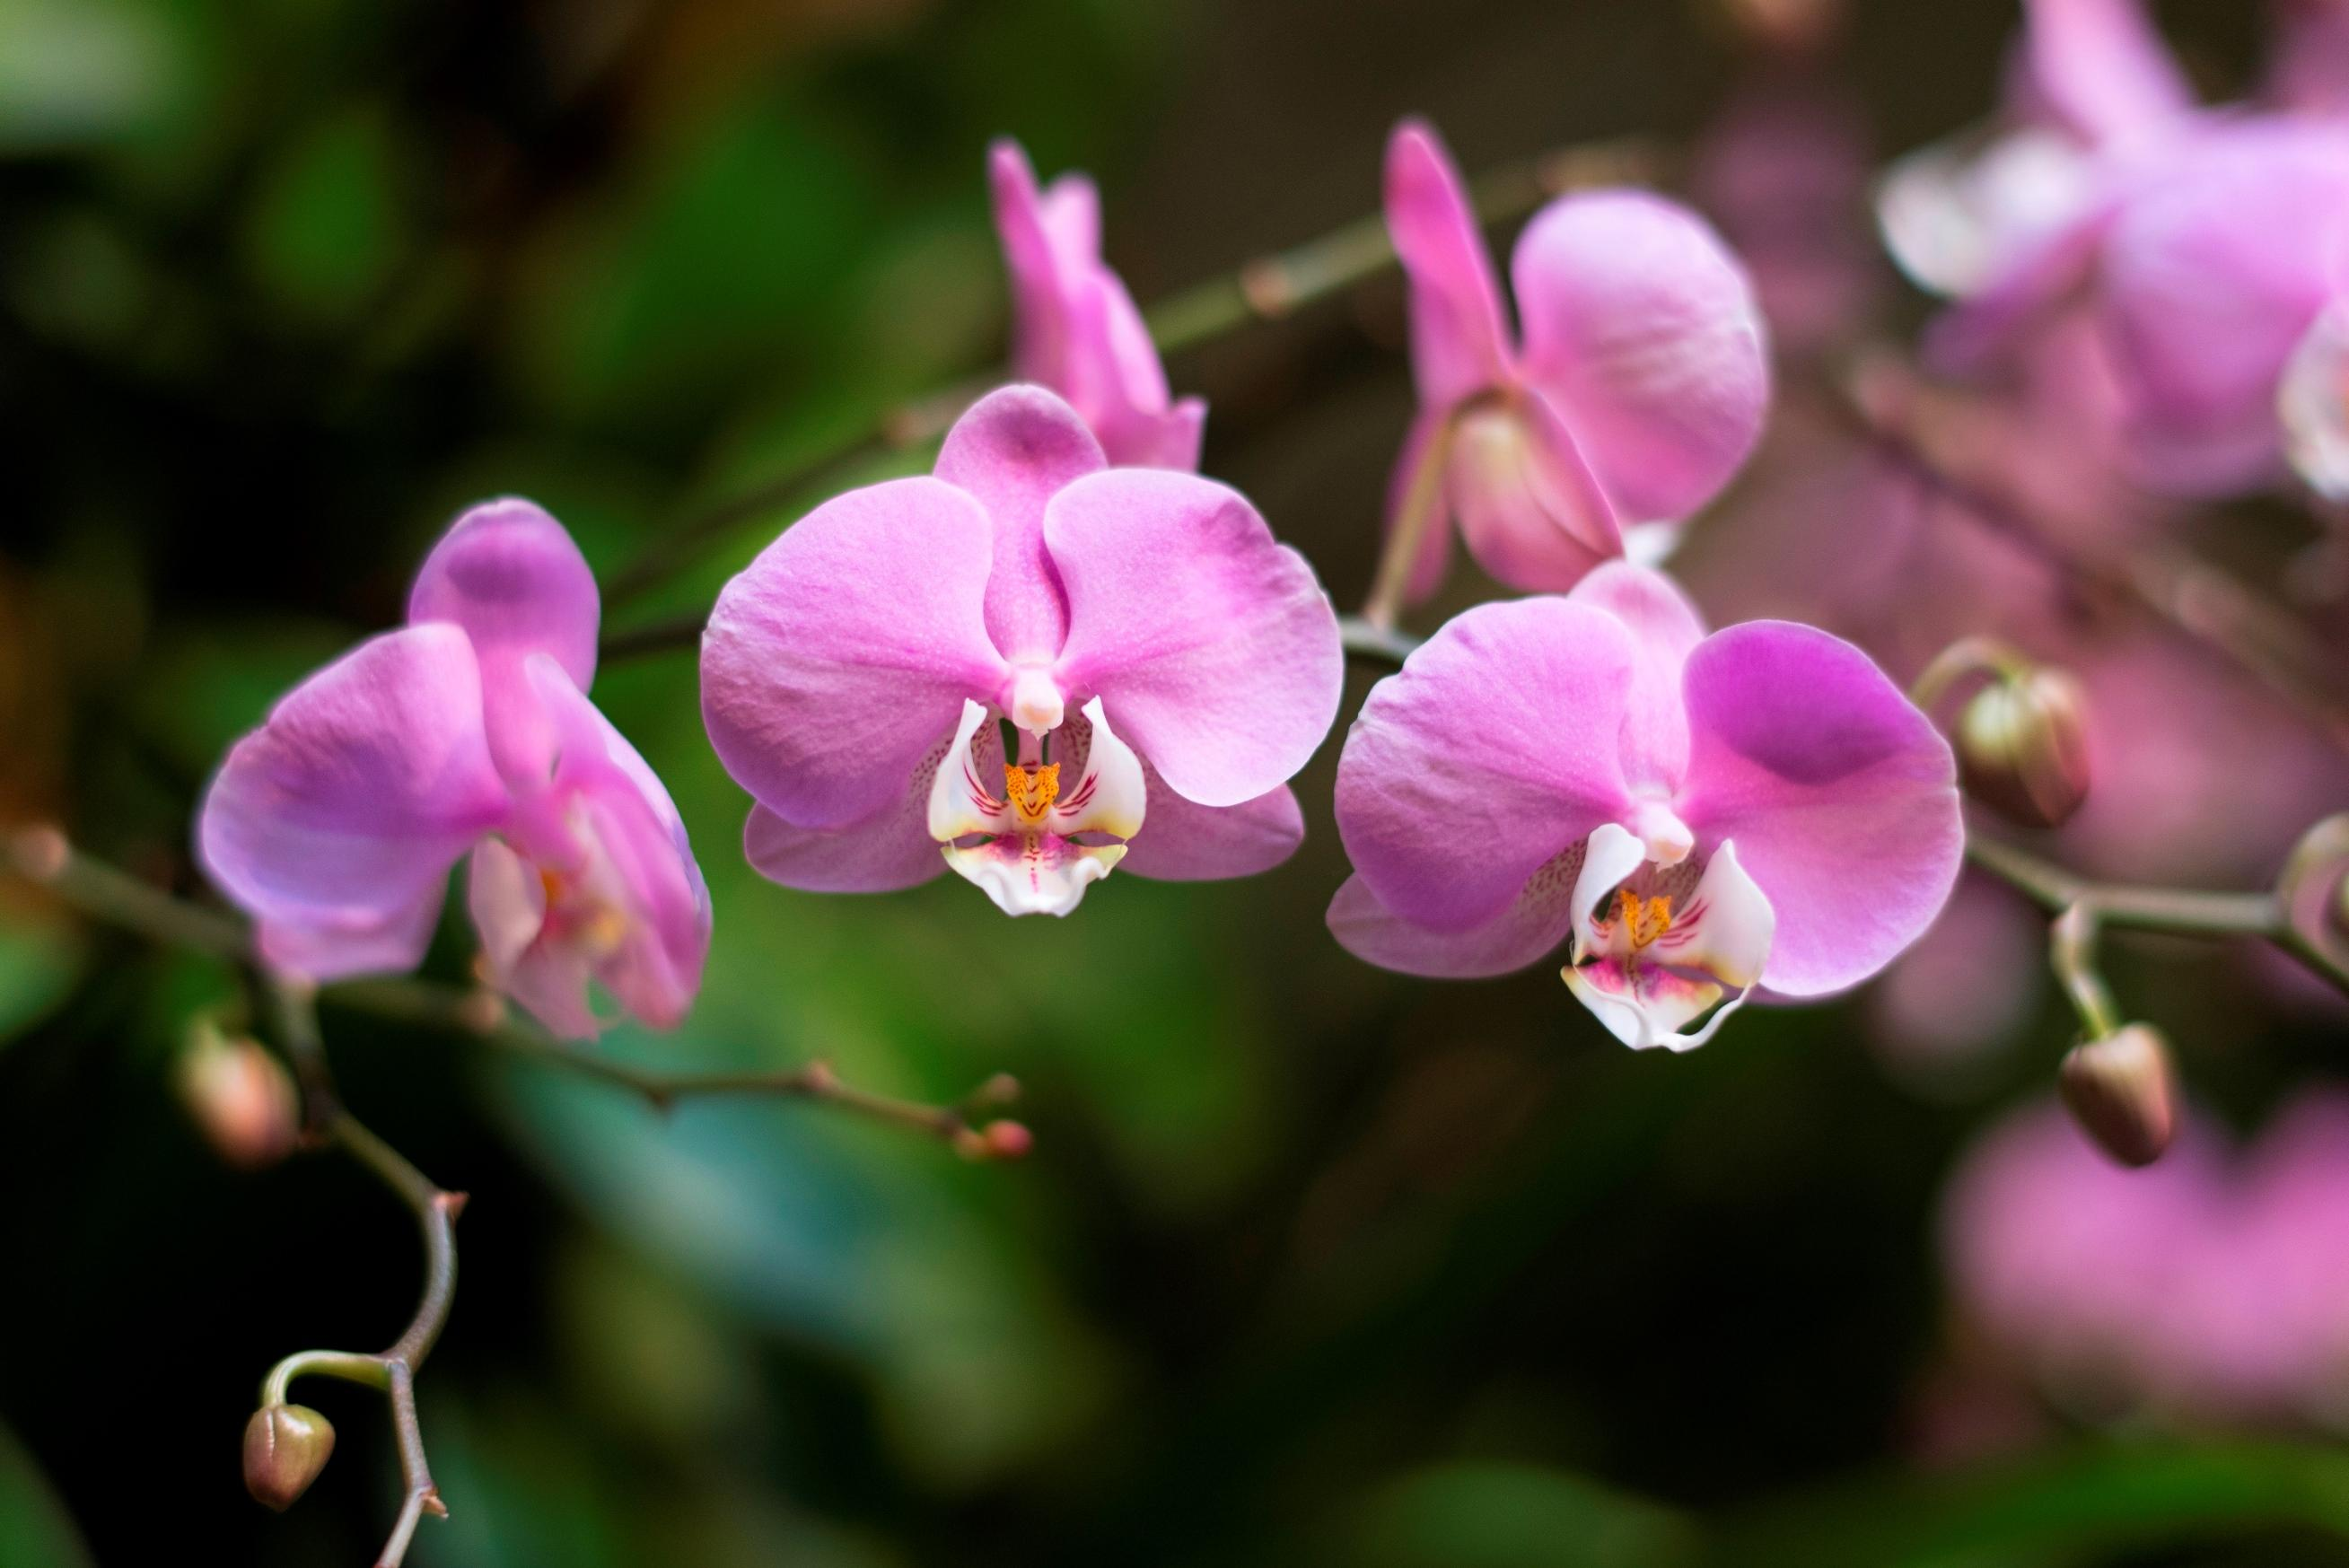 Spring is almost here stop and smell the flowers at these events the final day to check out the chicago botanic gardens orchid show is sunday march 13 robin carlson chicago botanic garden voltagebd Choice Image